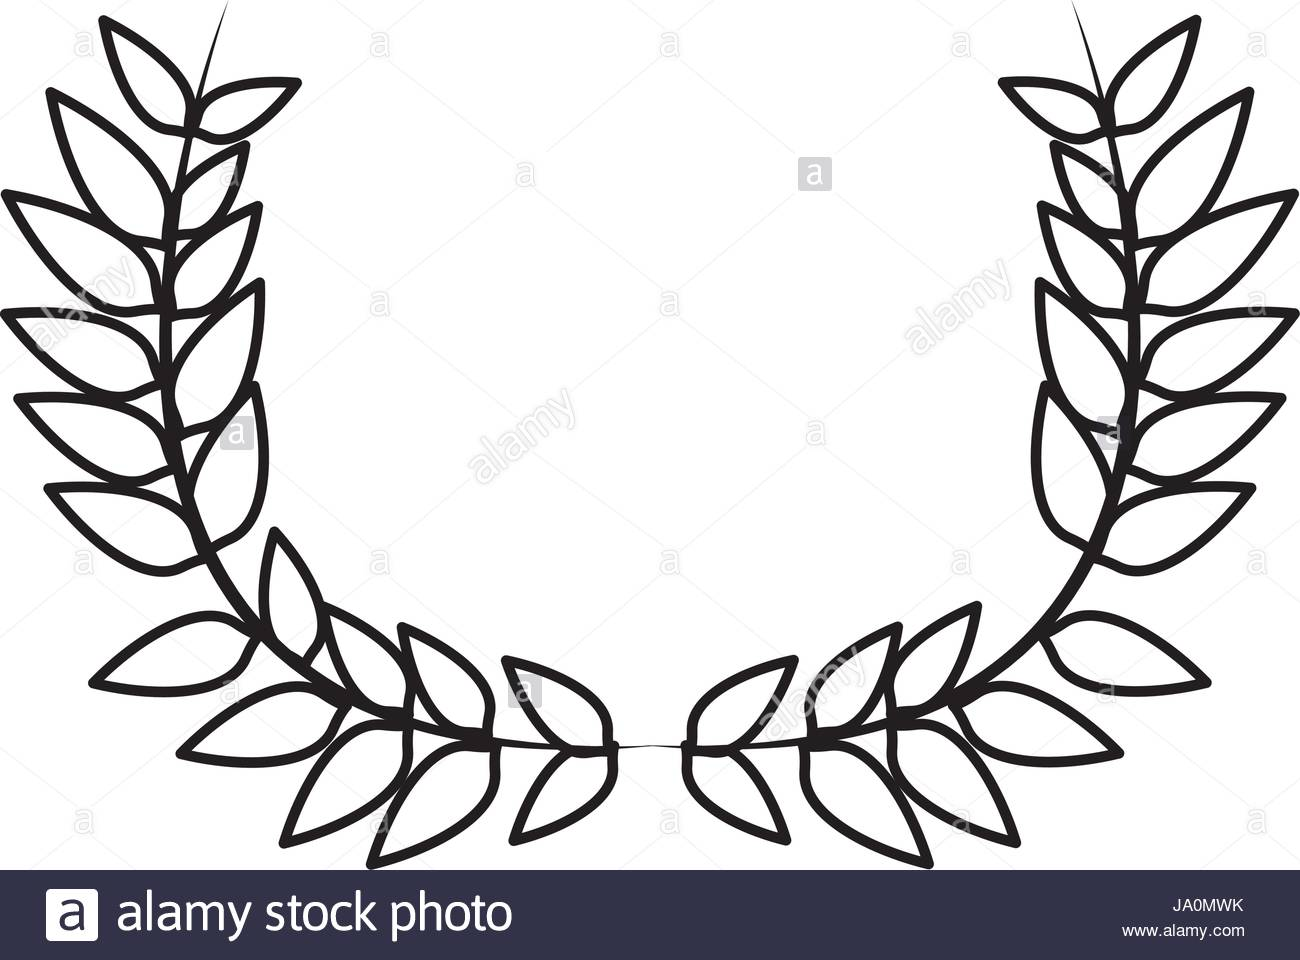 1300x960 Drawing Crown Half Flower Natural Decoration Laurel Leaves Stock